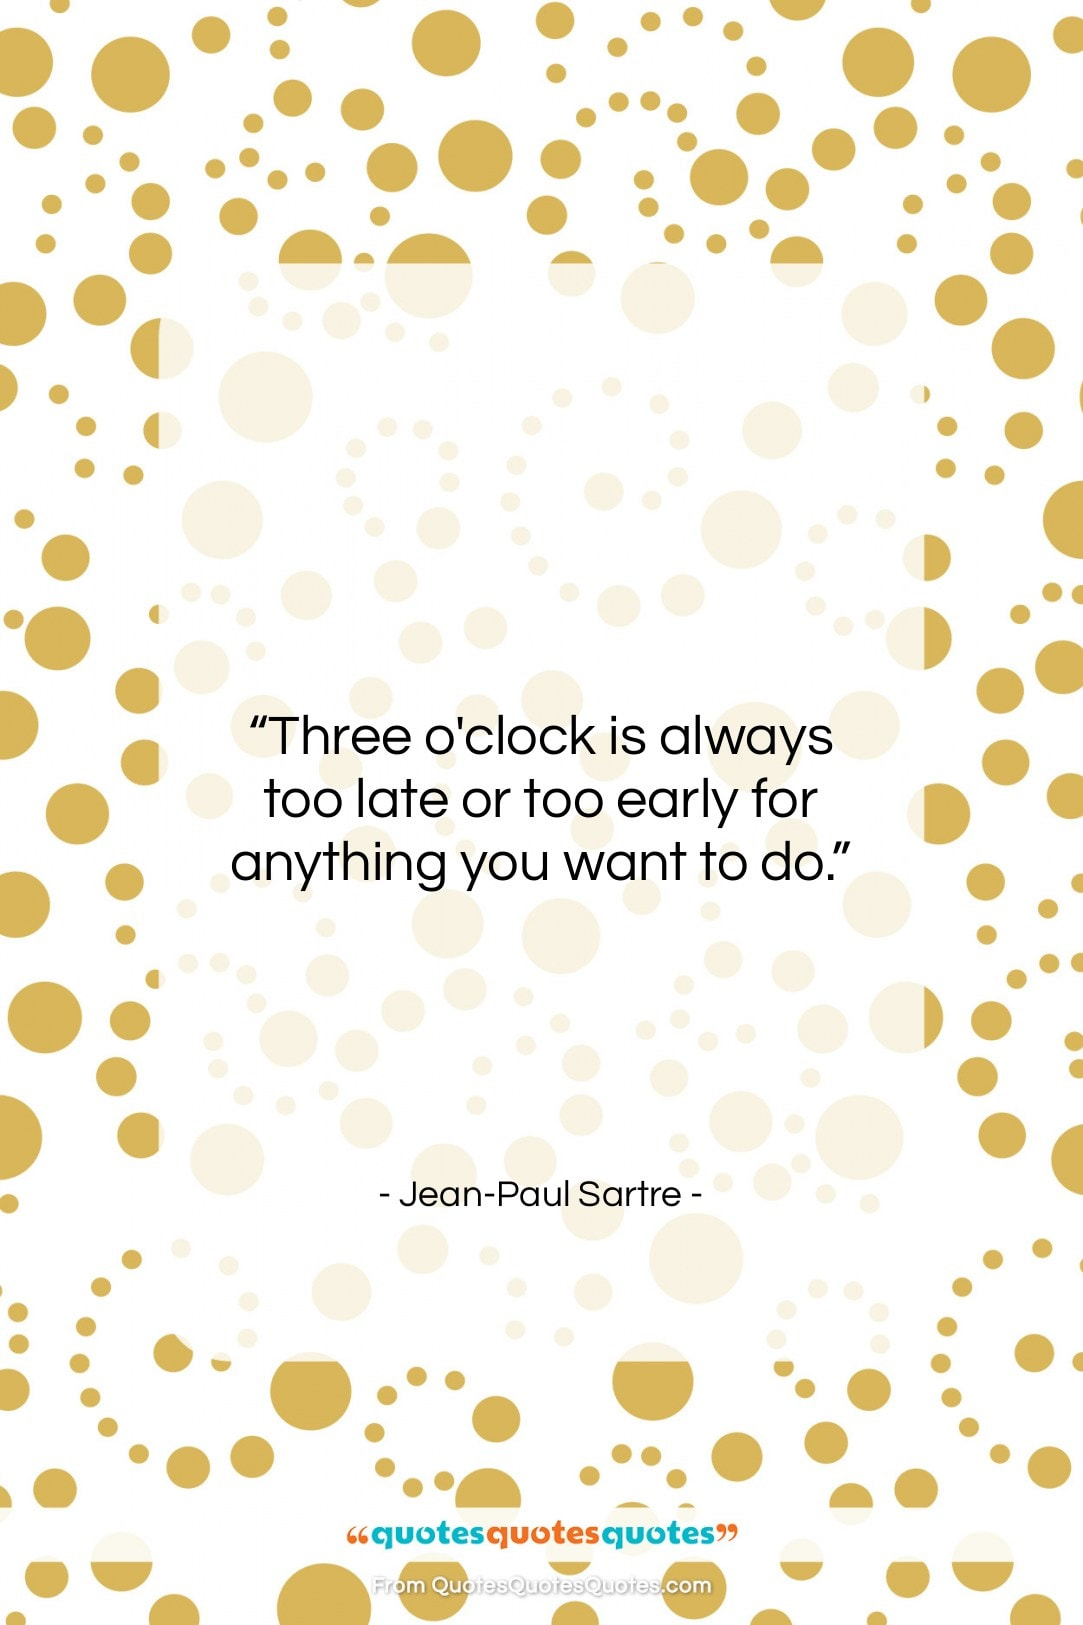 """Jean-Paul Sartre quote: """"Three o'clock is always too late or…""""- at QuotesQuotesQuotes.com"""